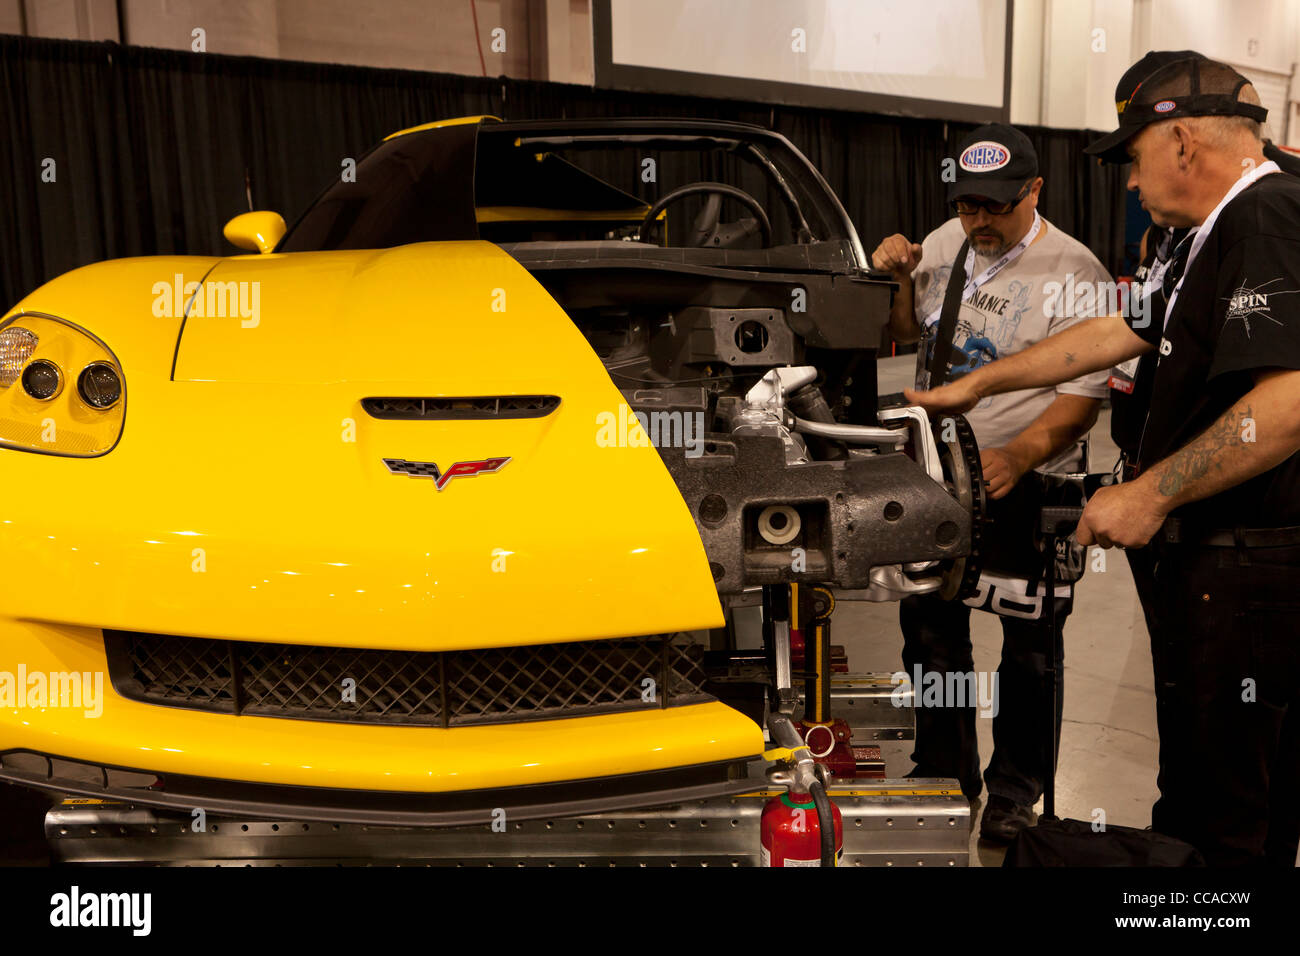 Two mechanics inspecting a cutaway model of car - Stock Image